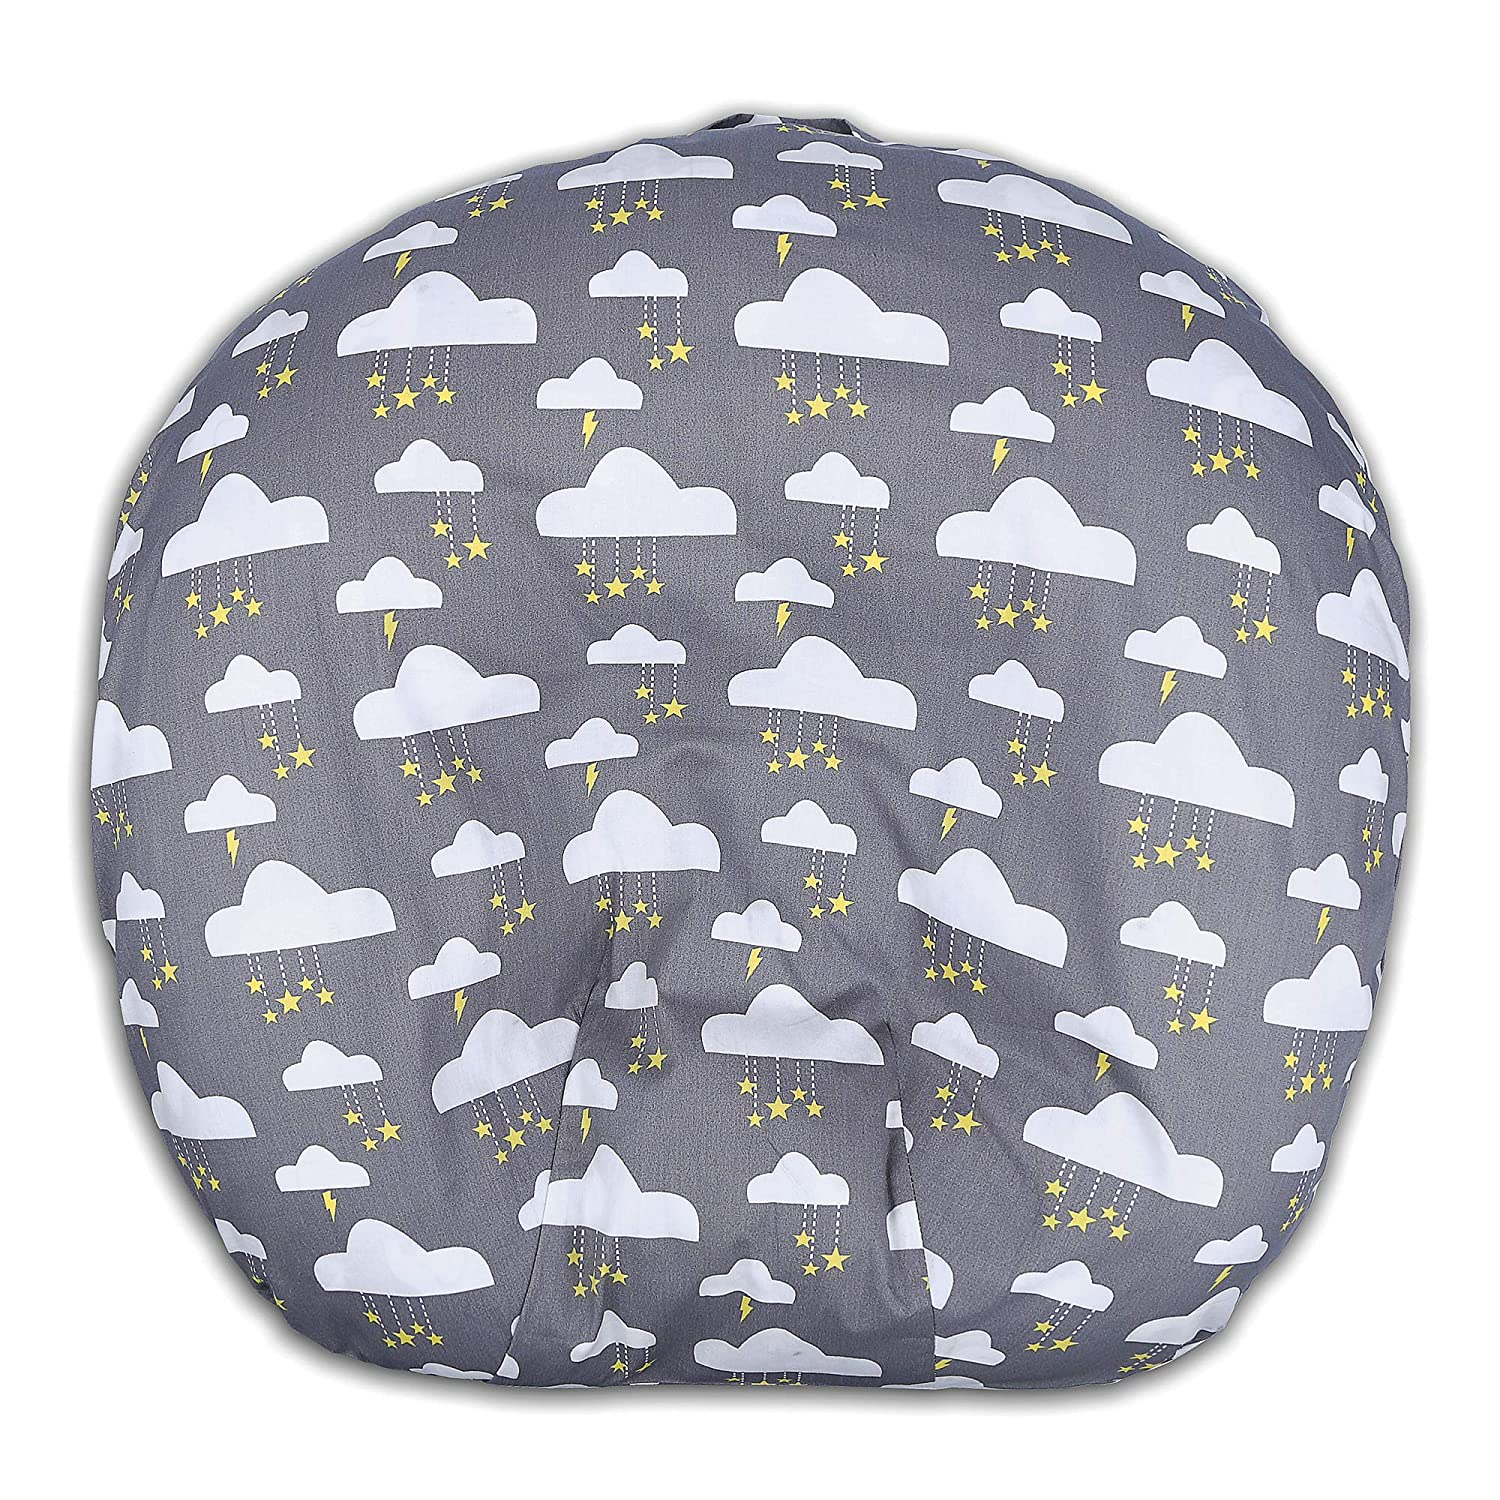 Newborn Lounger Cover 100% Soft Cotton Removable Cover Twinkle Stars Grey